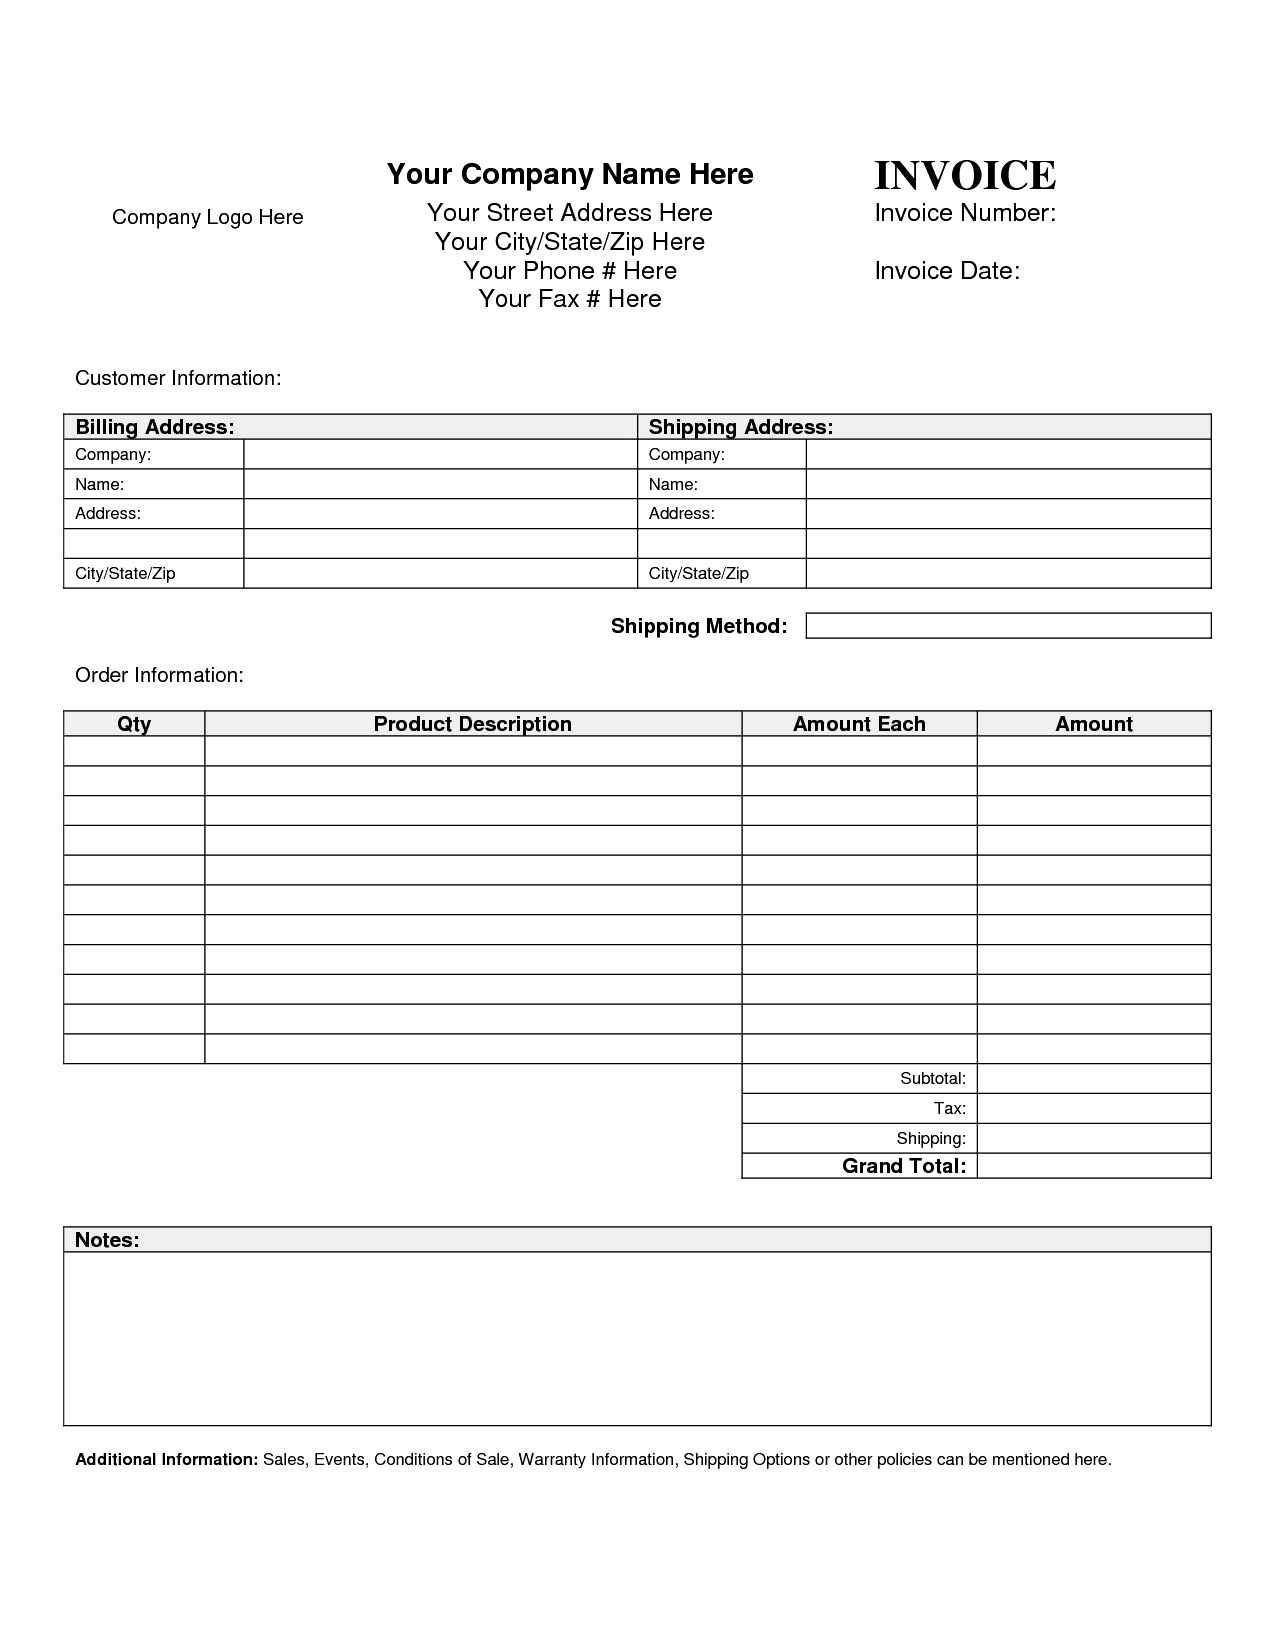 Free Printable Blank Invoice Sheet Templates Word Template Sample Uk - Free Printable Customer Information Sheets